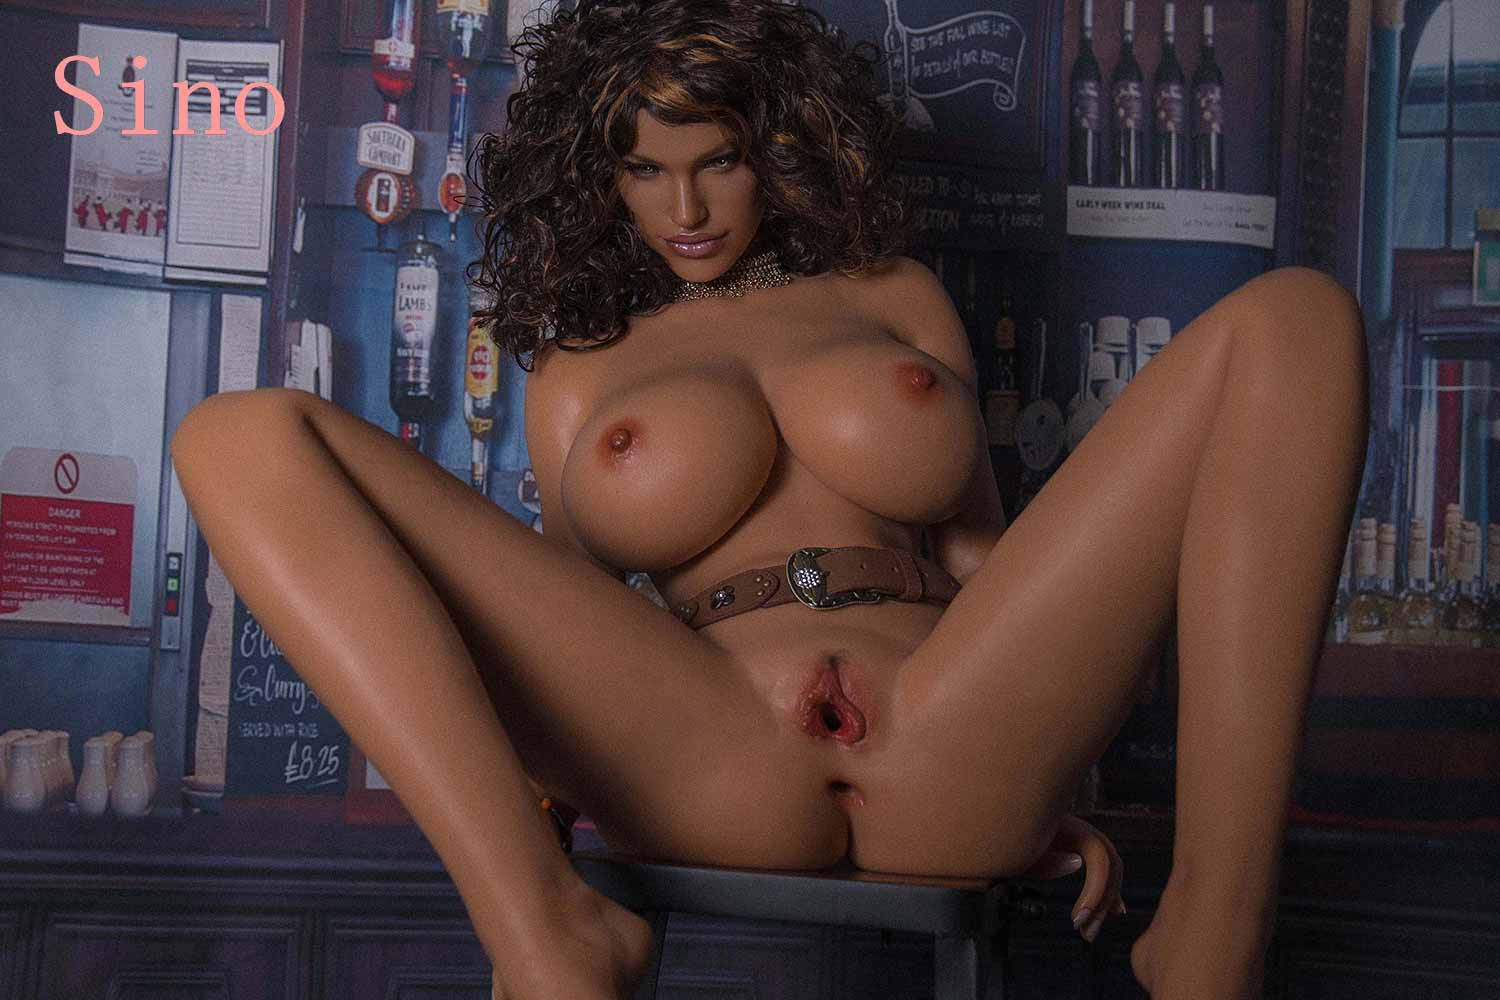 A silicone sex doll with open legs showing thick labia